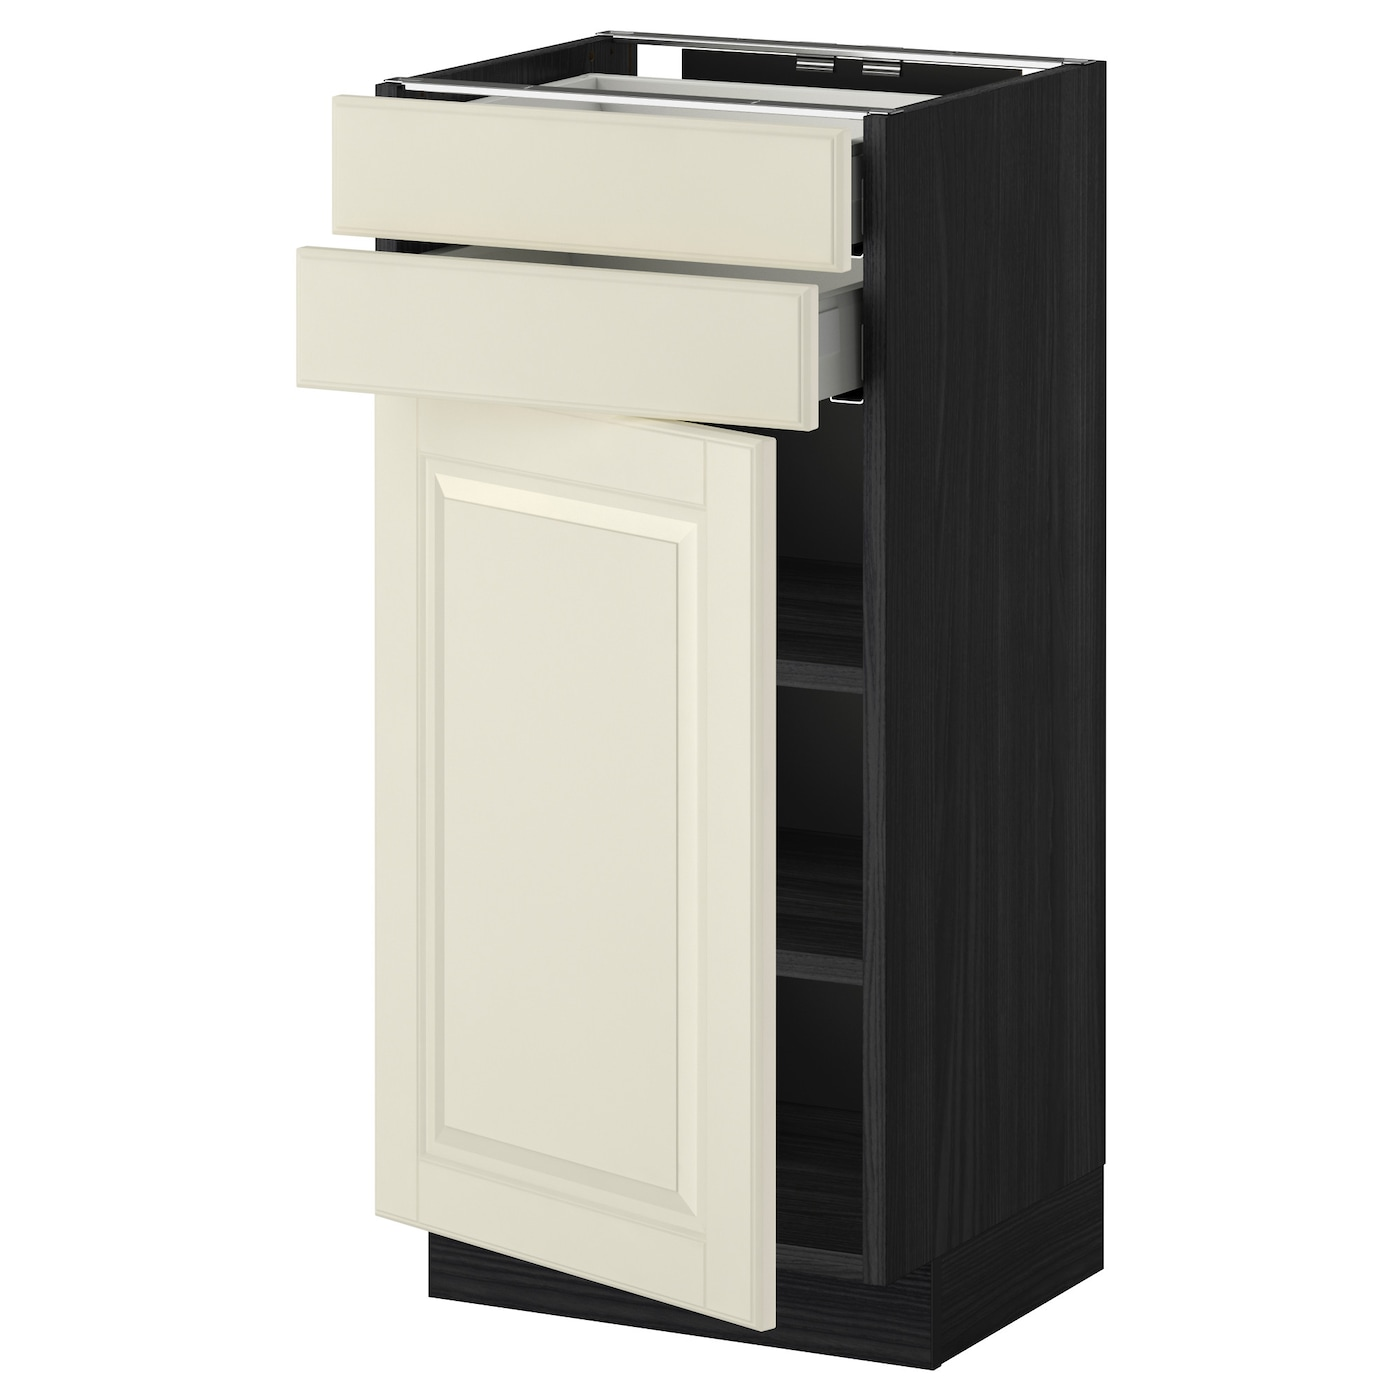 metod maximera base cabinet w door 2 drawers black bodbyn off white 40 x 37 cm ikea. Black Bedroom Furniture Sets. Home Design Ideas